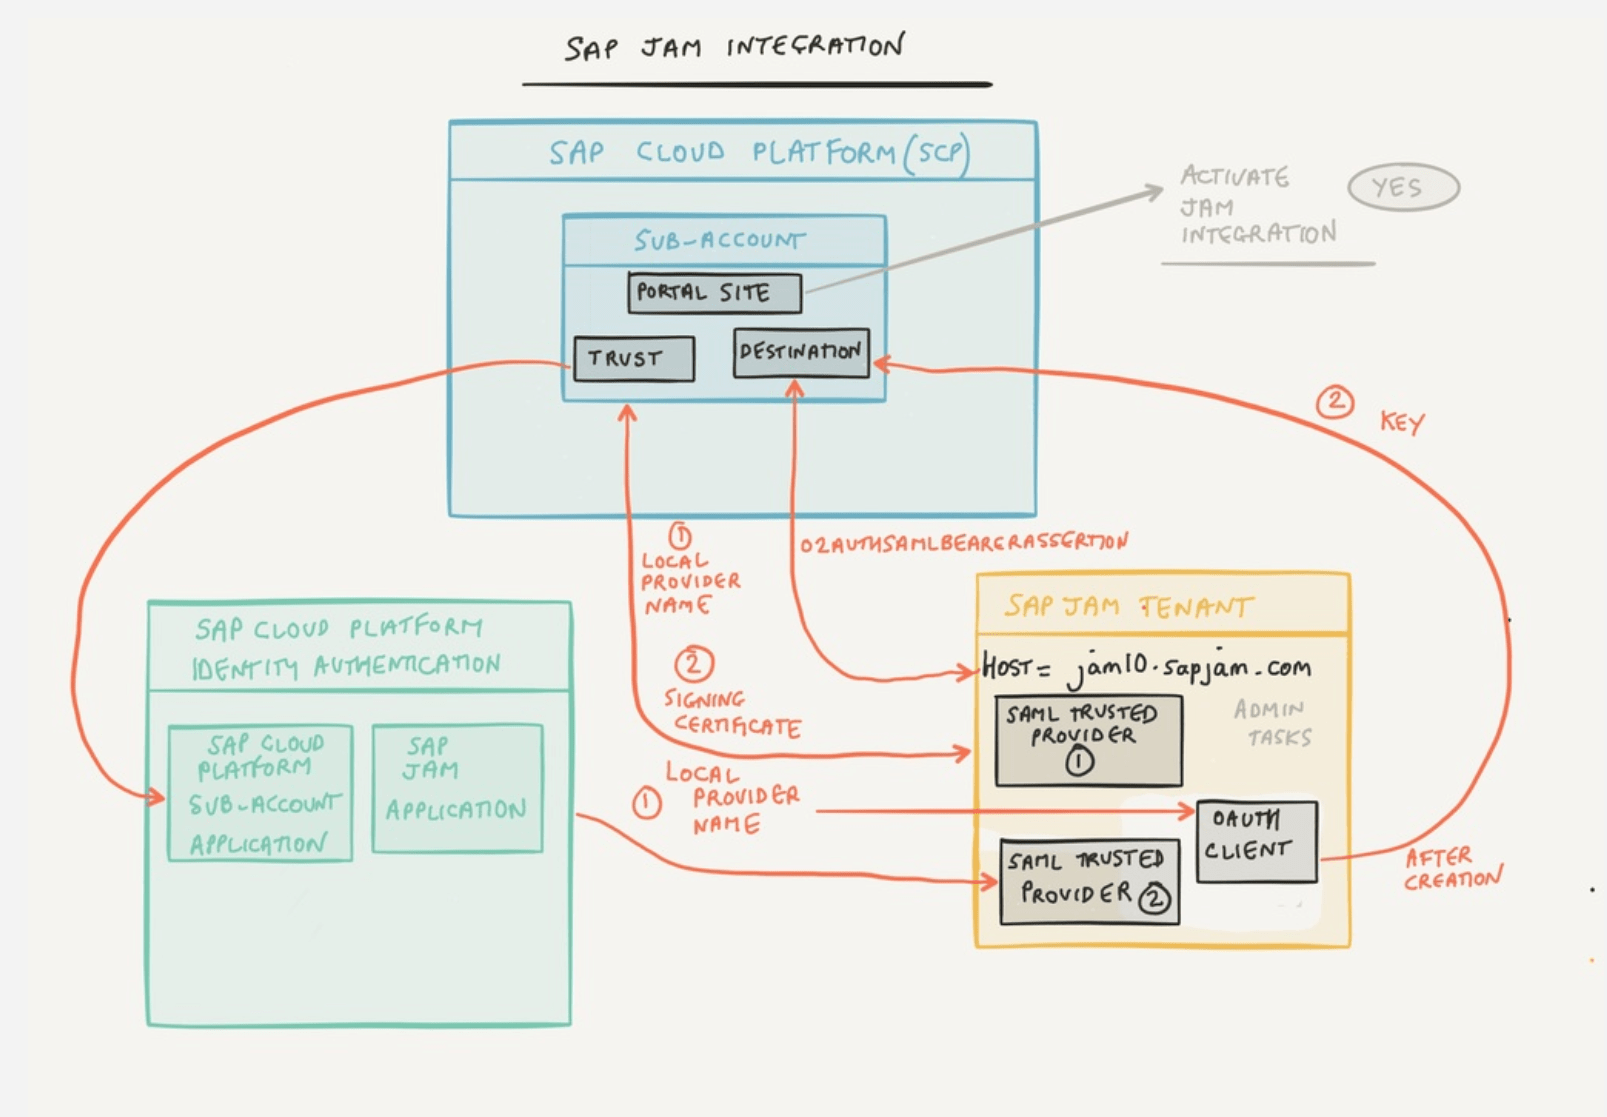 sap portal architecture diagram amp research wiring jam collaboration  set up in productive environment